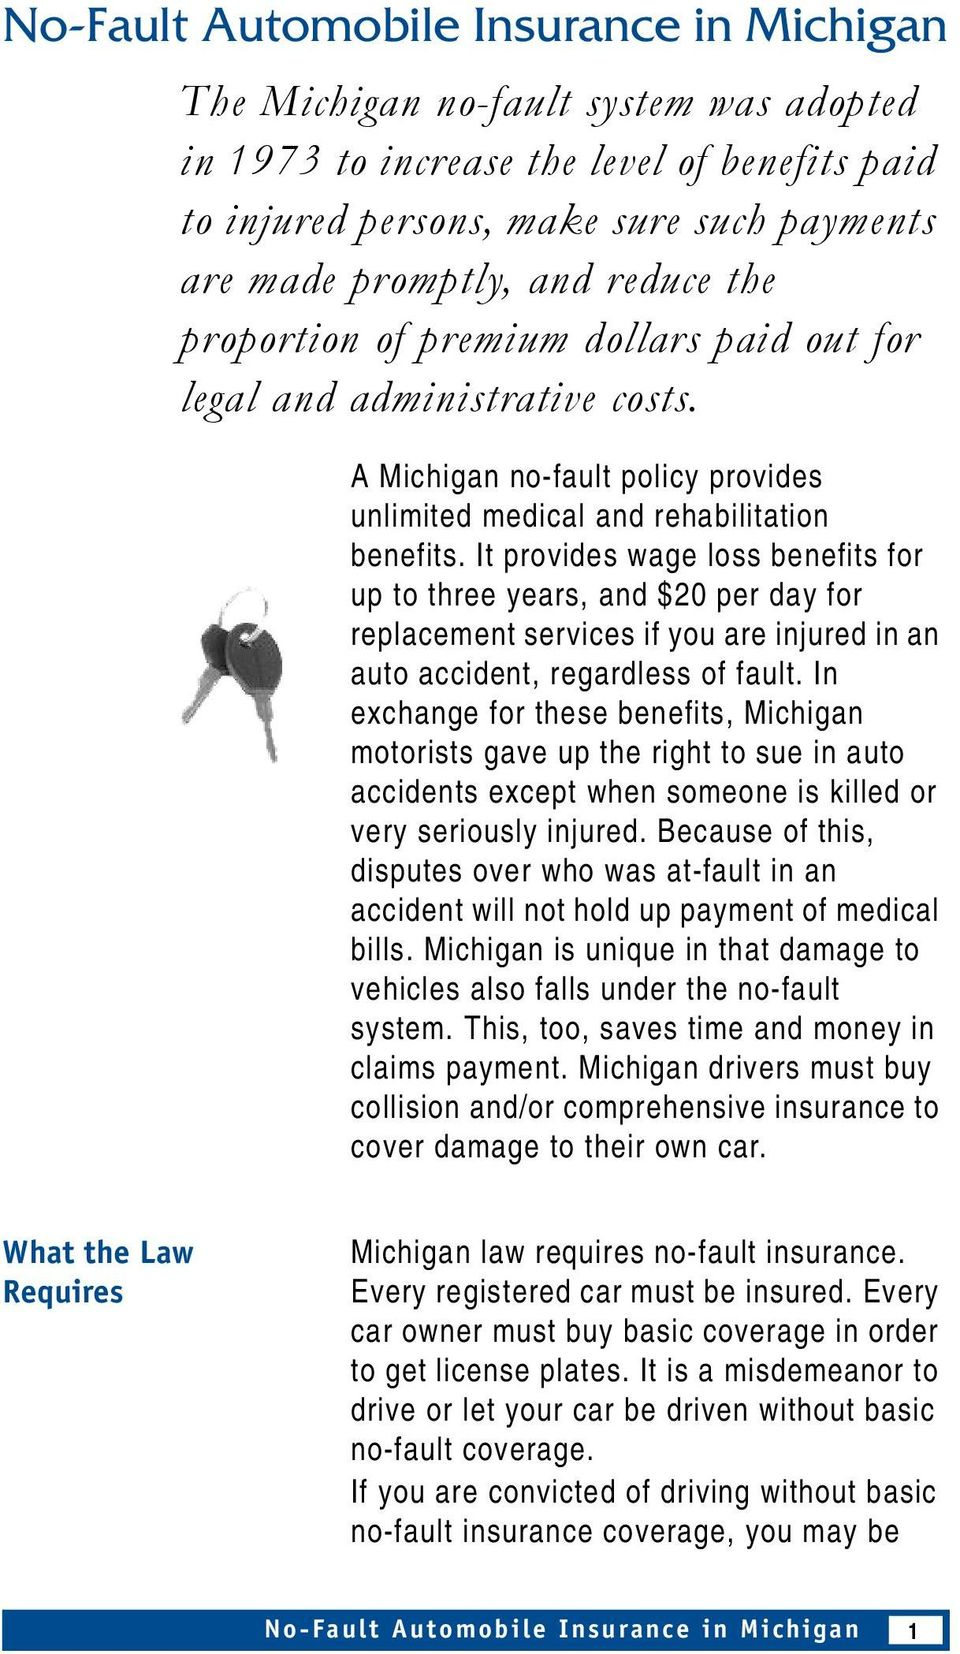 It provides wage loss benefits for up to three years, and $20 per day for replacement services if you are injured in an auto accident, regardless of fault.